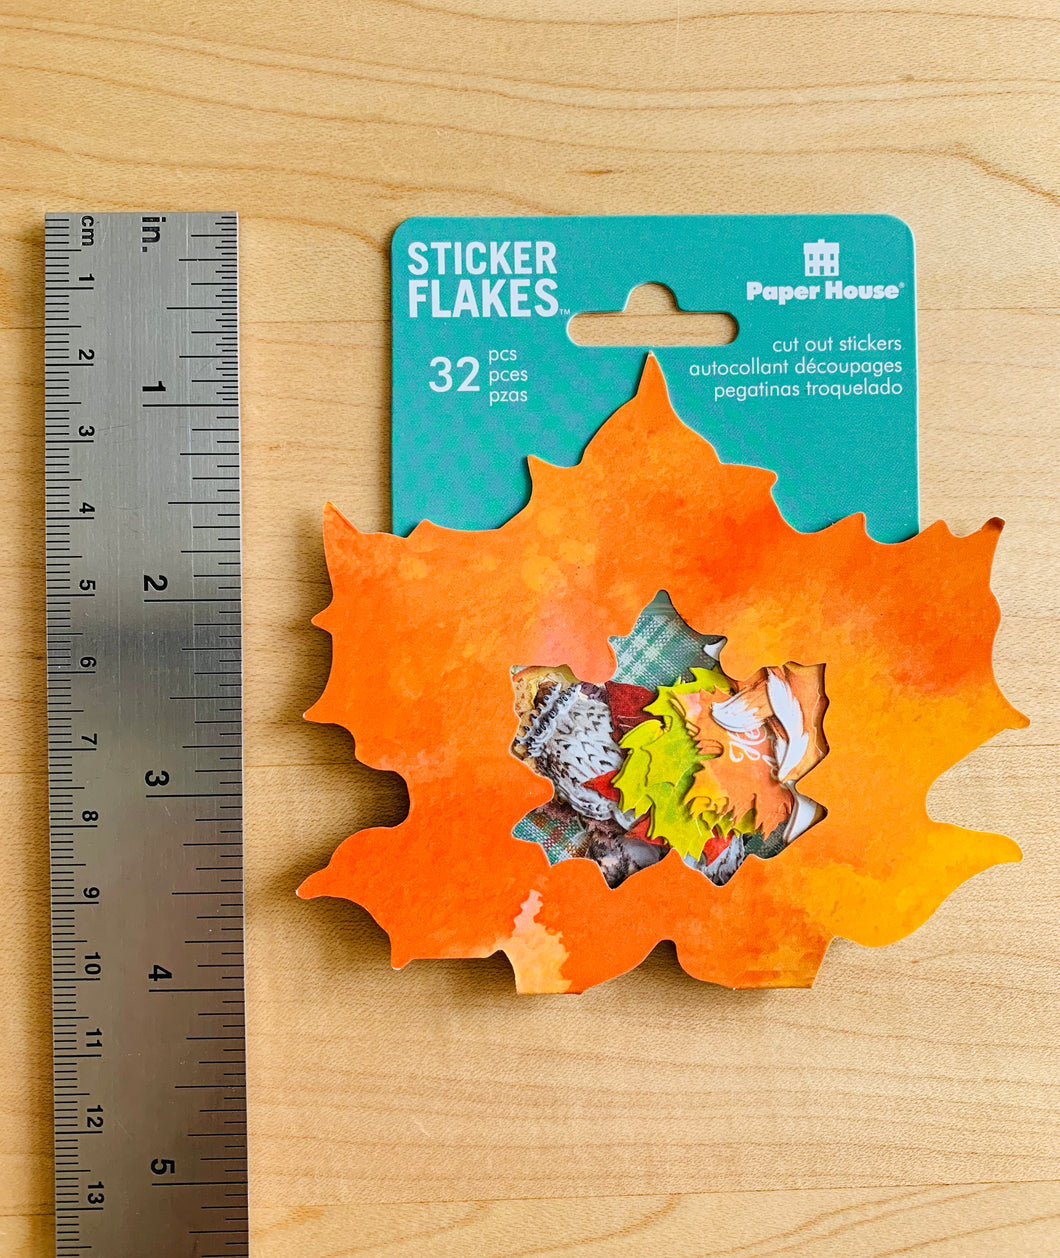 Autumn Woods Sticker Flakes